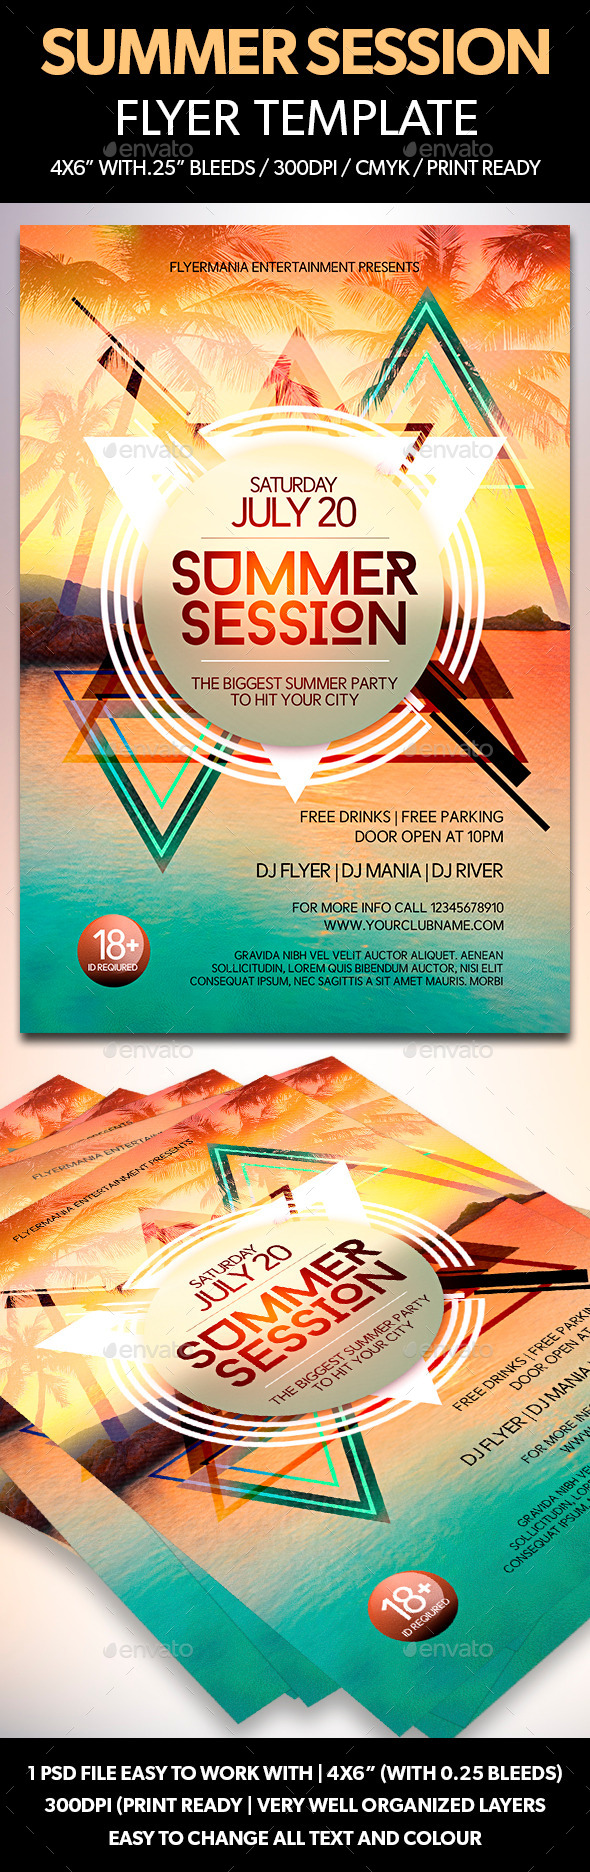 Summer Session Flyer Template - Clubs & Parties Events